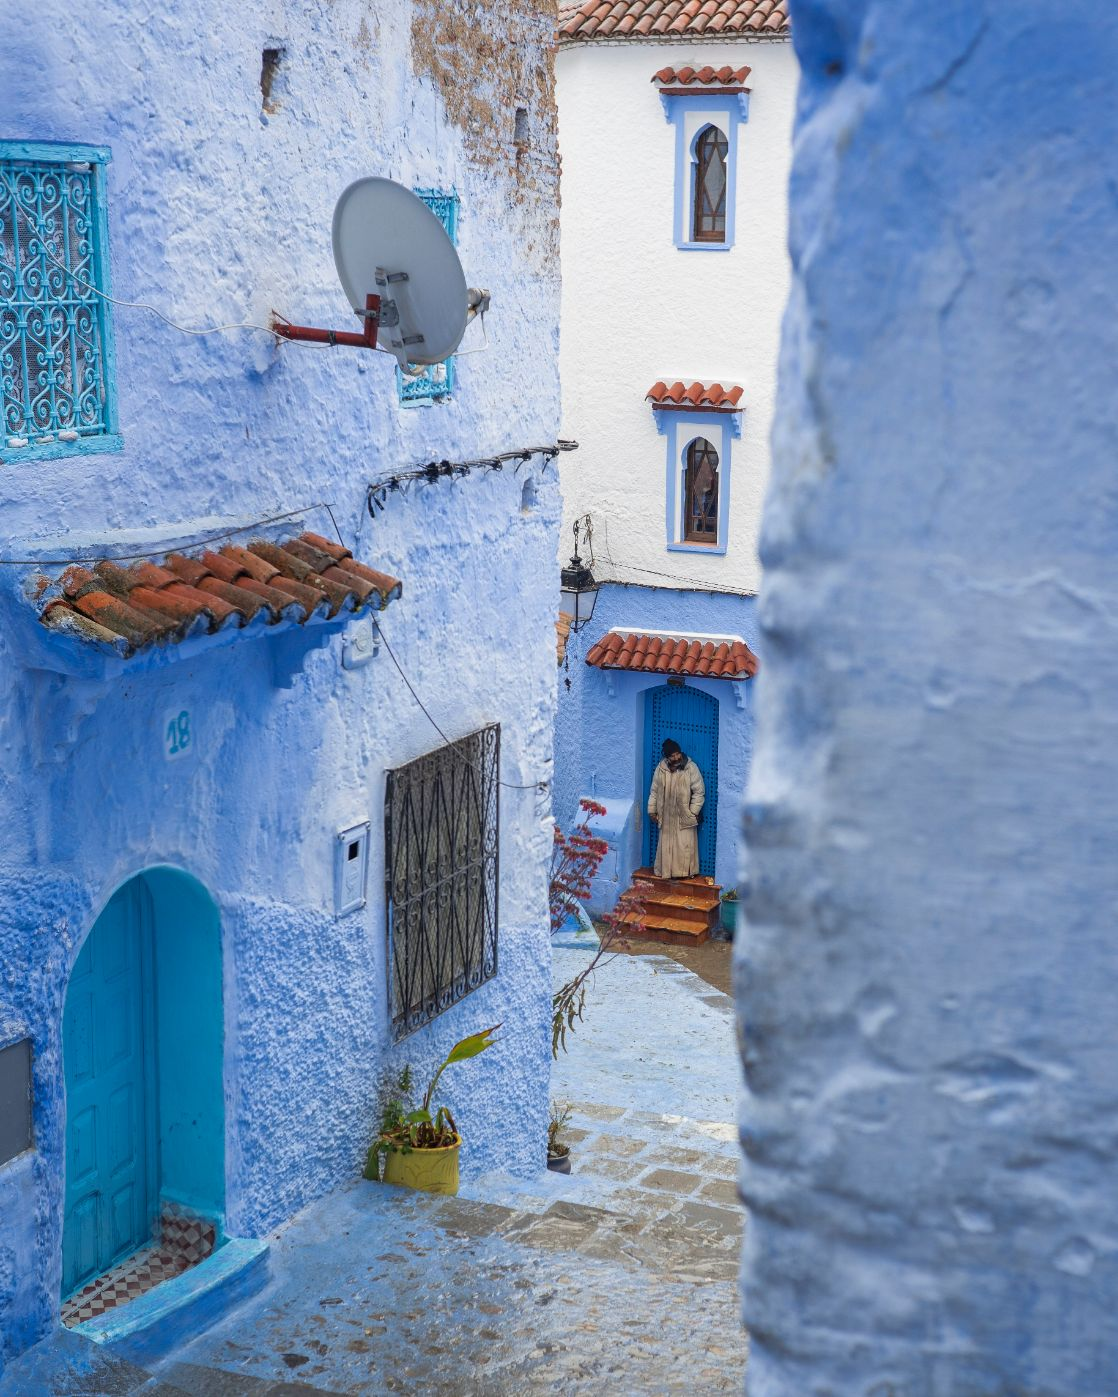 Travel photography image of Chefchaouen - Morocco's Blue City